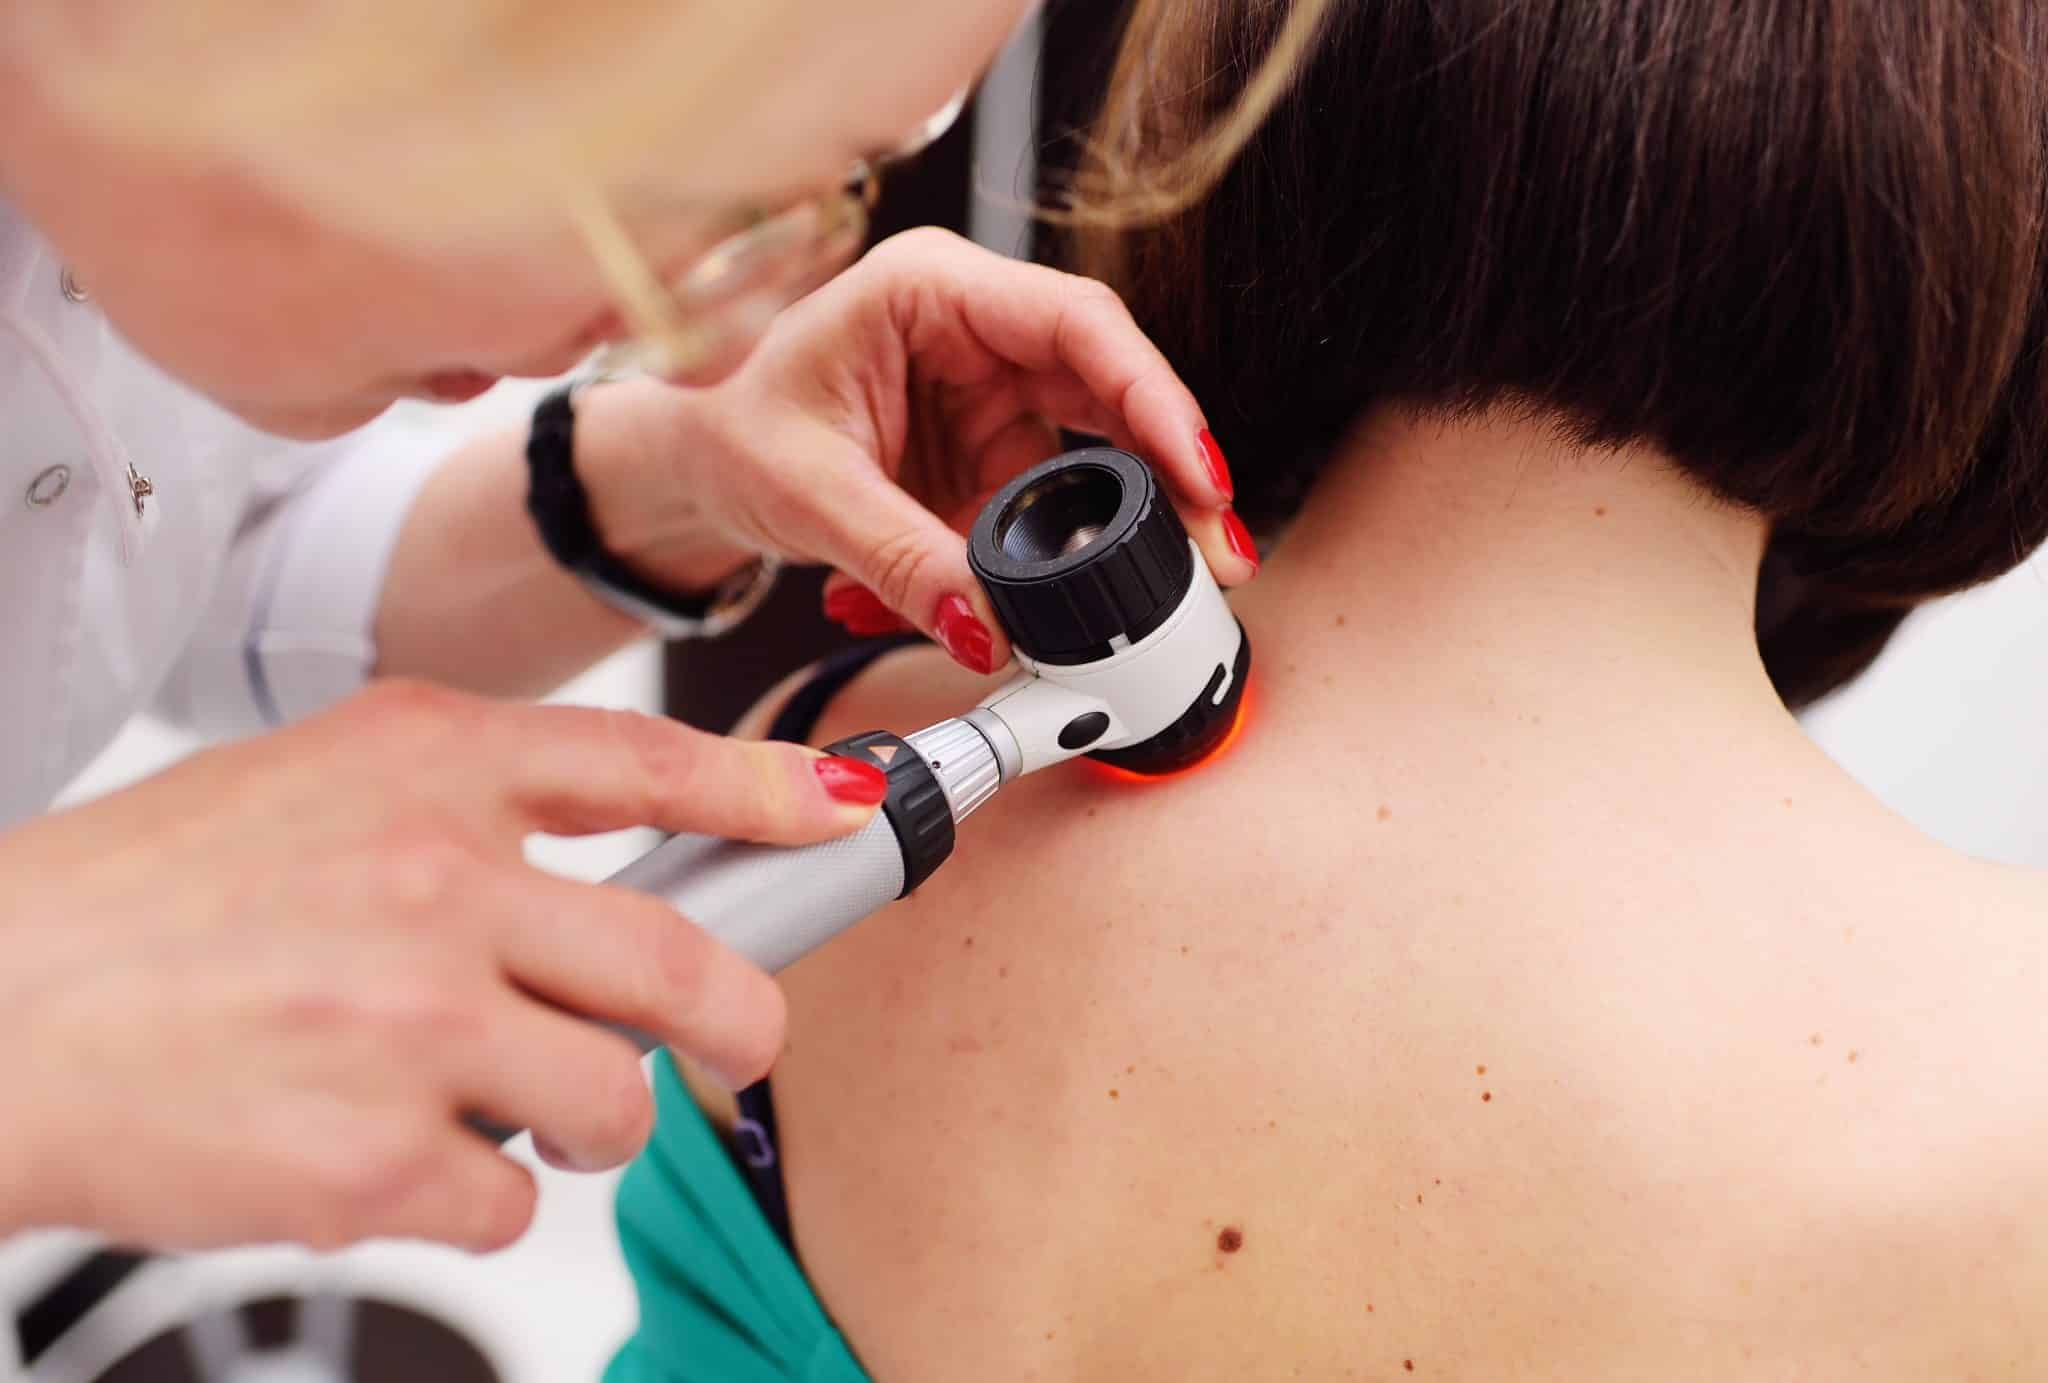 Doctor inspecting patient's skin for melanoma diagnosis